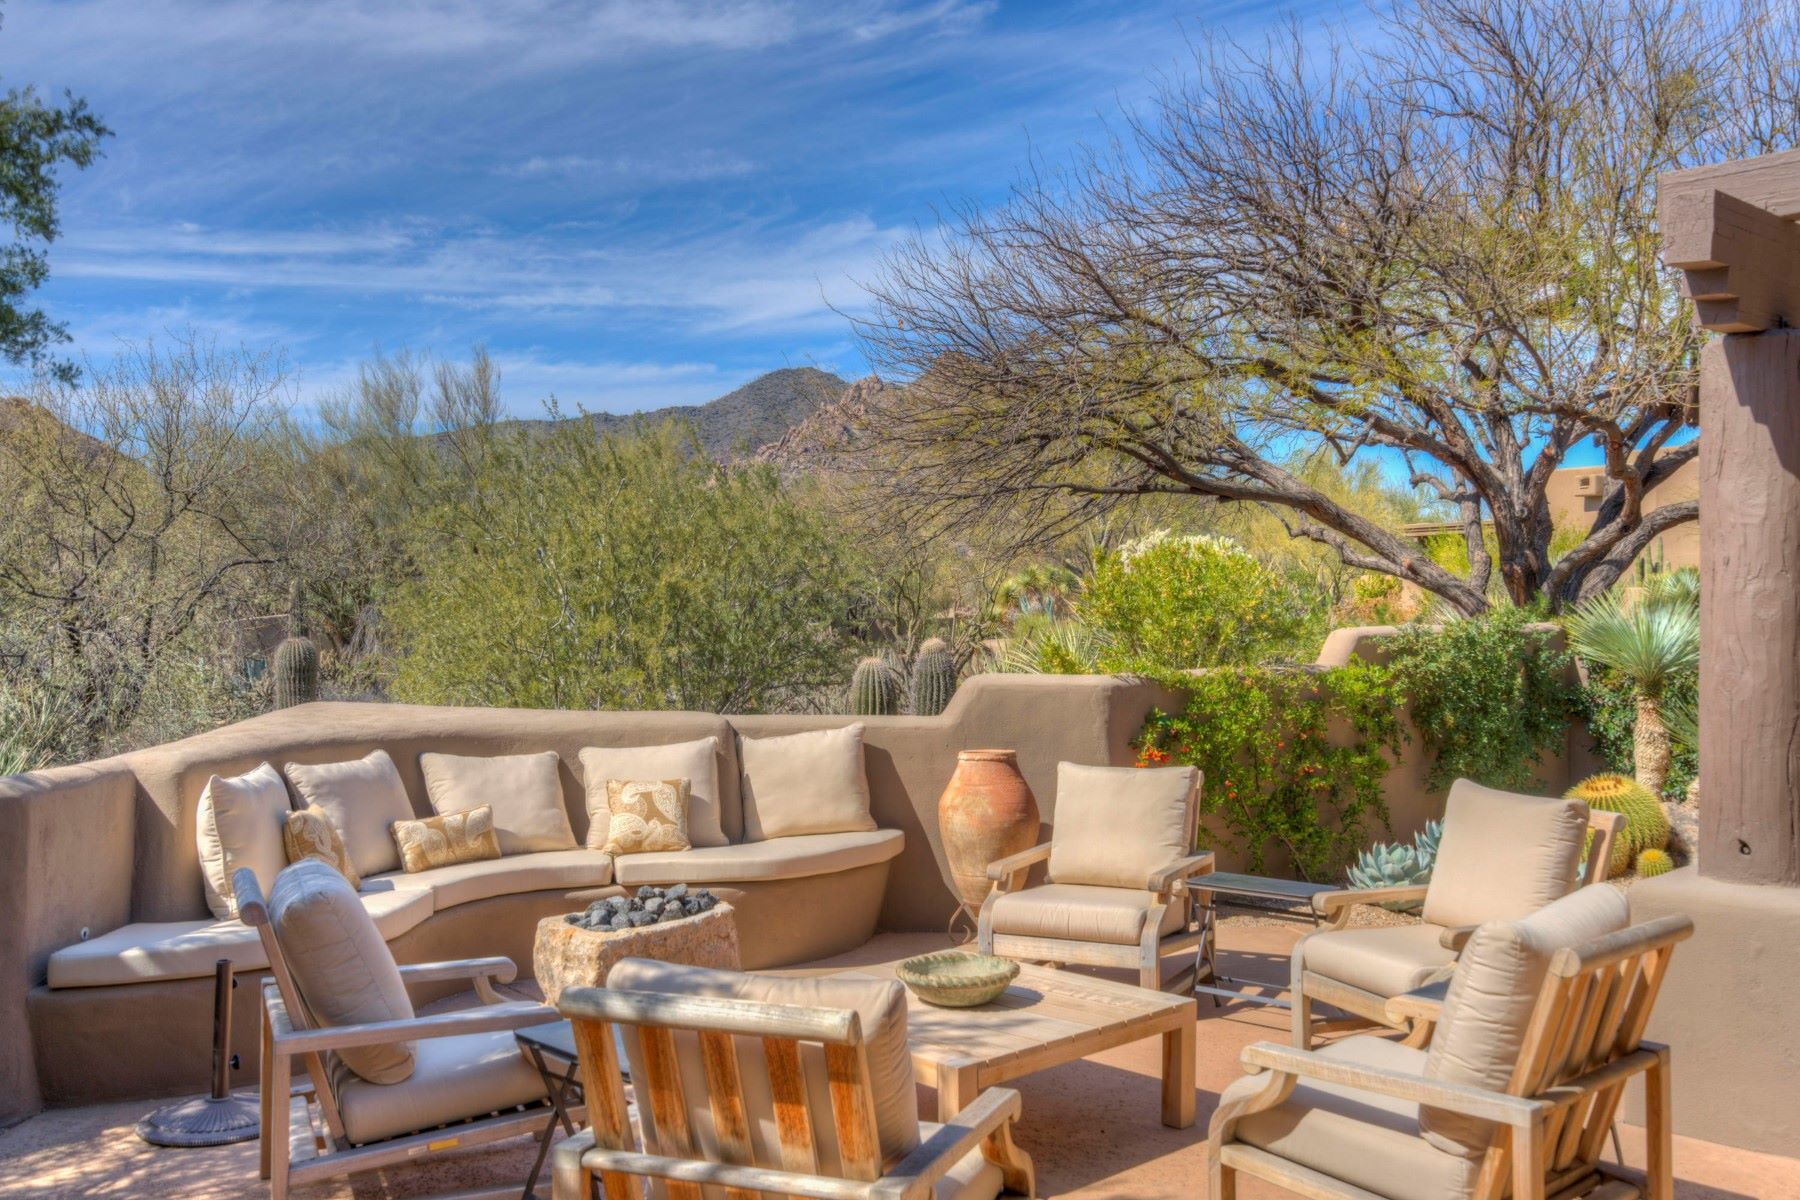 Single Family Home for Sale at Handsomely Updated Boulders Home 7511 E CLUB VILLA CIR, Scottsdale, Arizona, 85266 United States